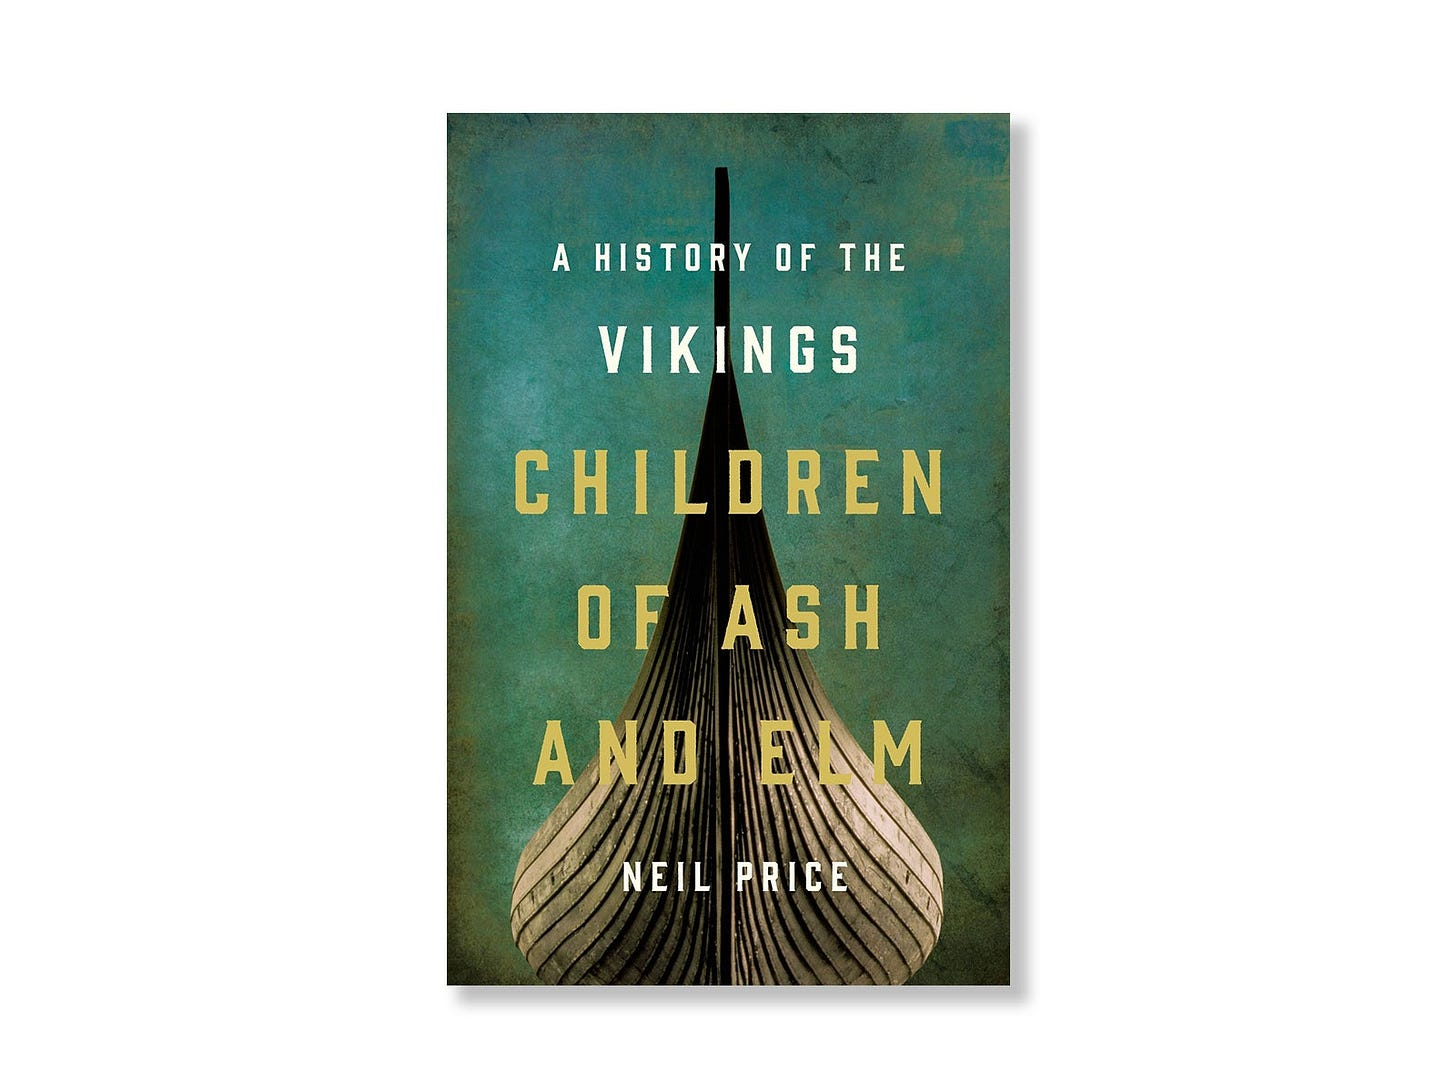 The dramatic front of a viking ship as seen from below on a book cover.